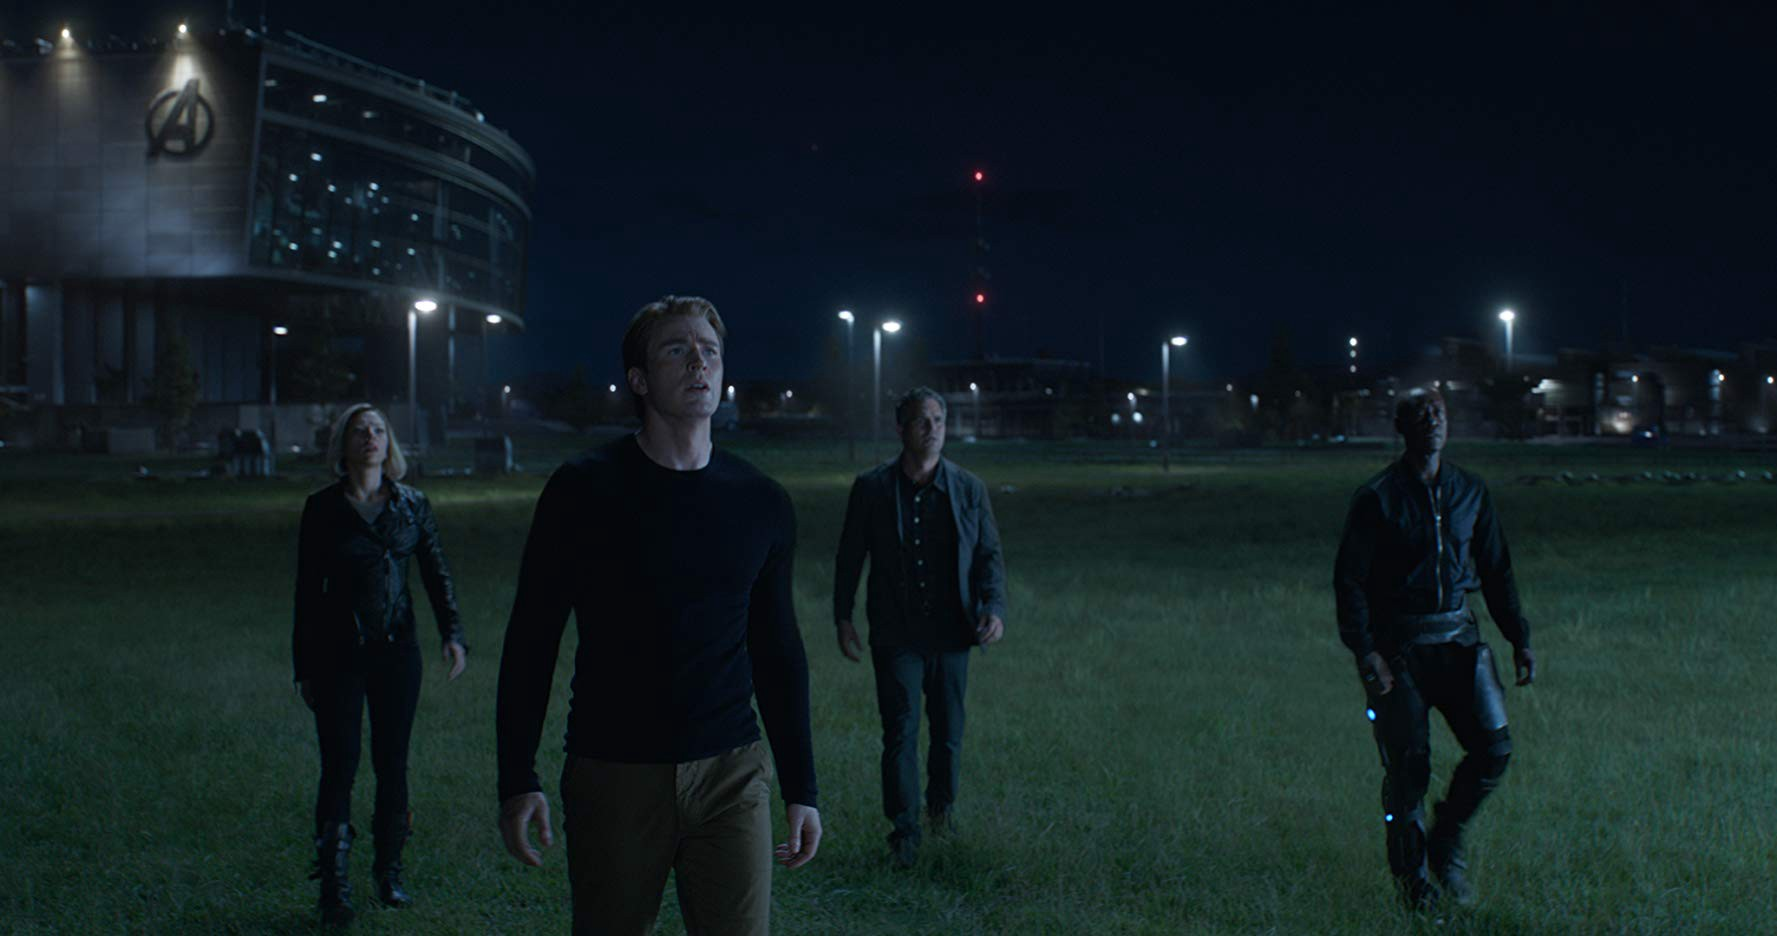 10 Potential Post-Credit Scenes for Avengers: Endgame